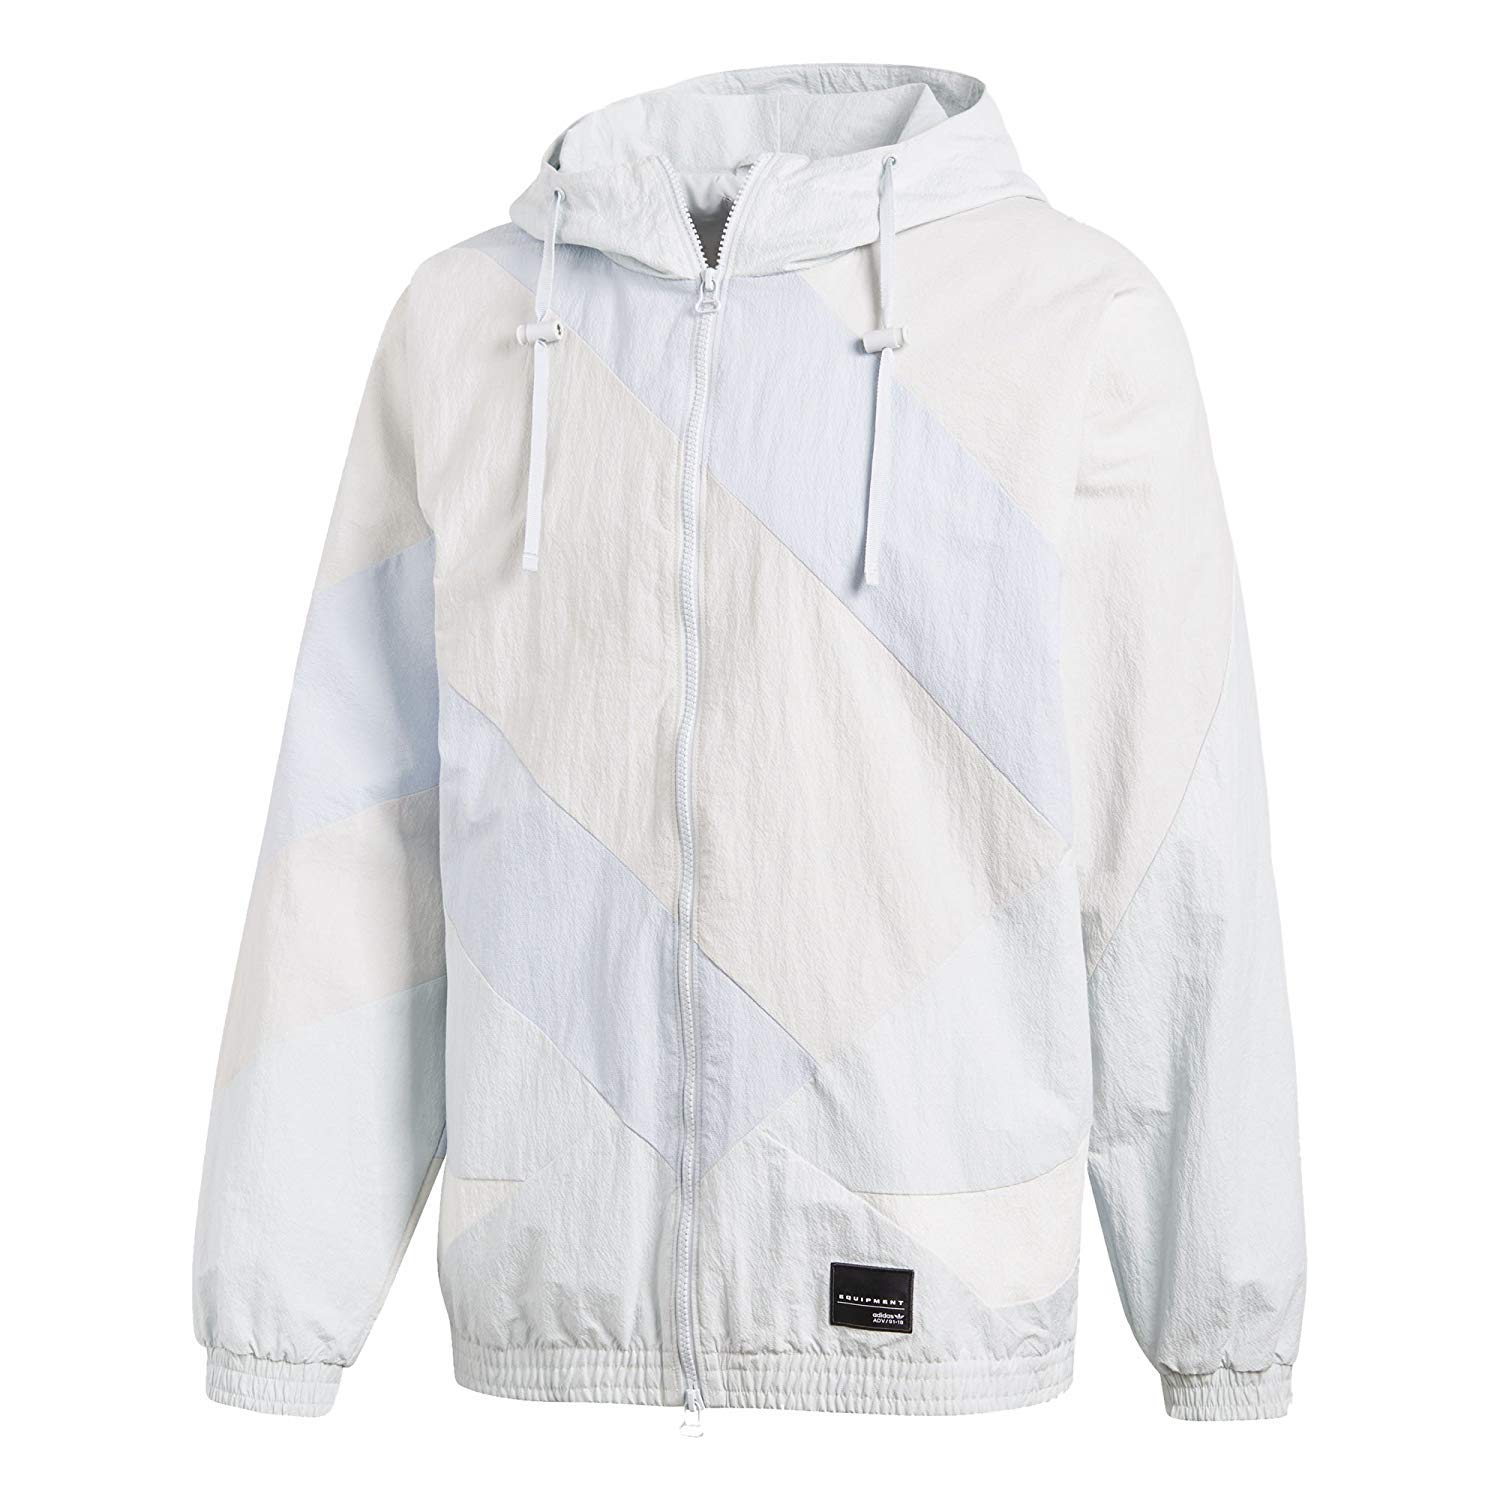 super cheap new style online for sale Adidas EQT 18 Windbreaker at Amazon Men's Clothing store: